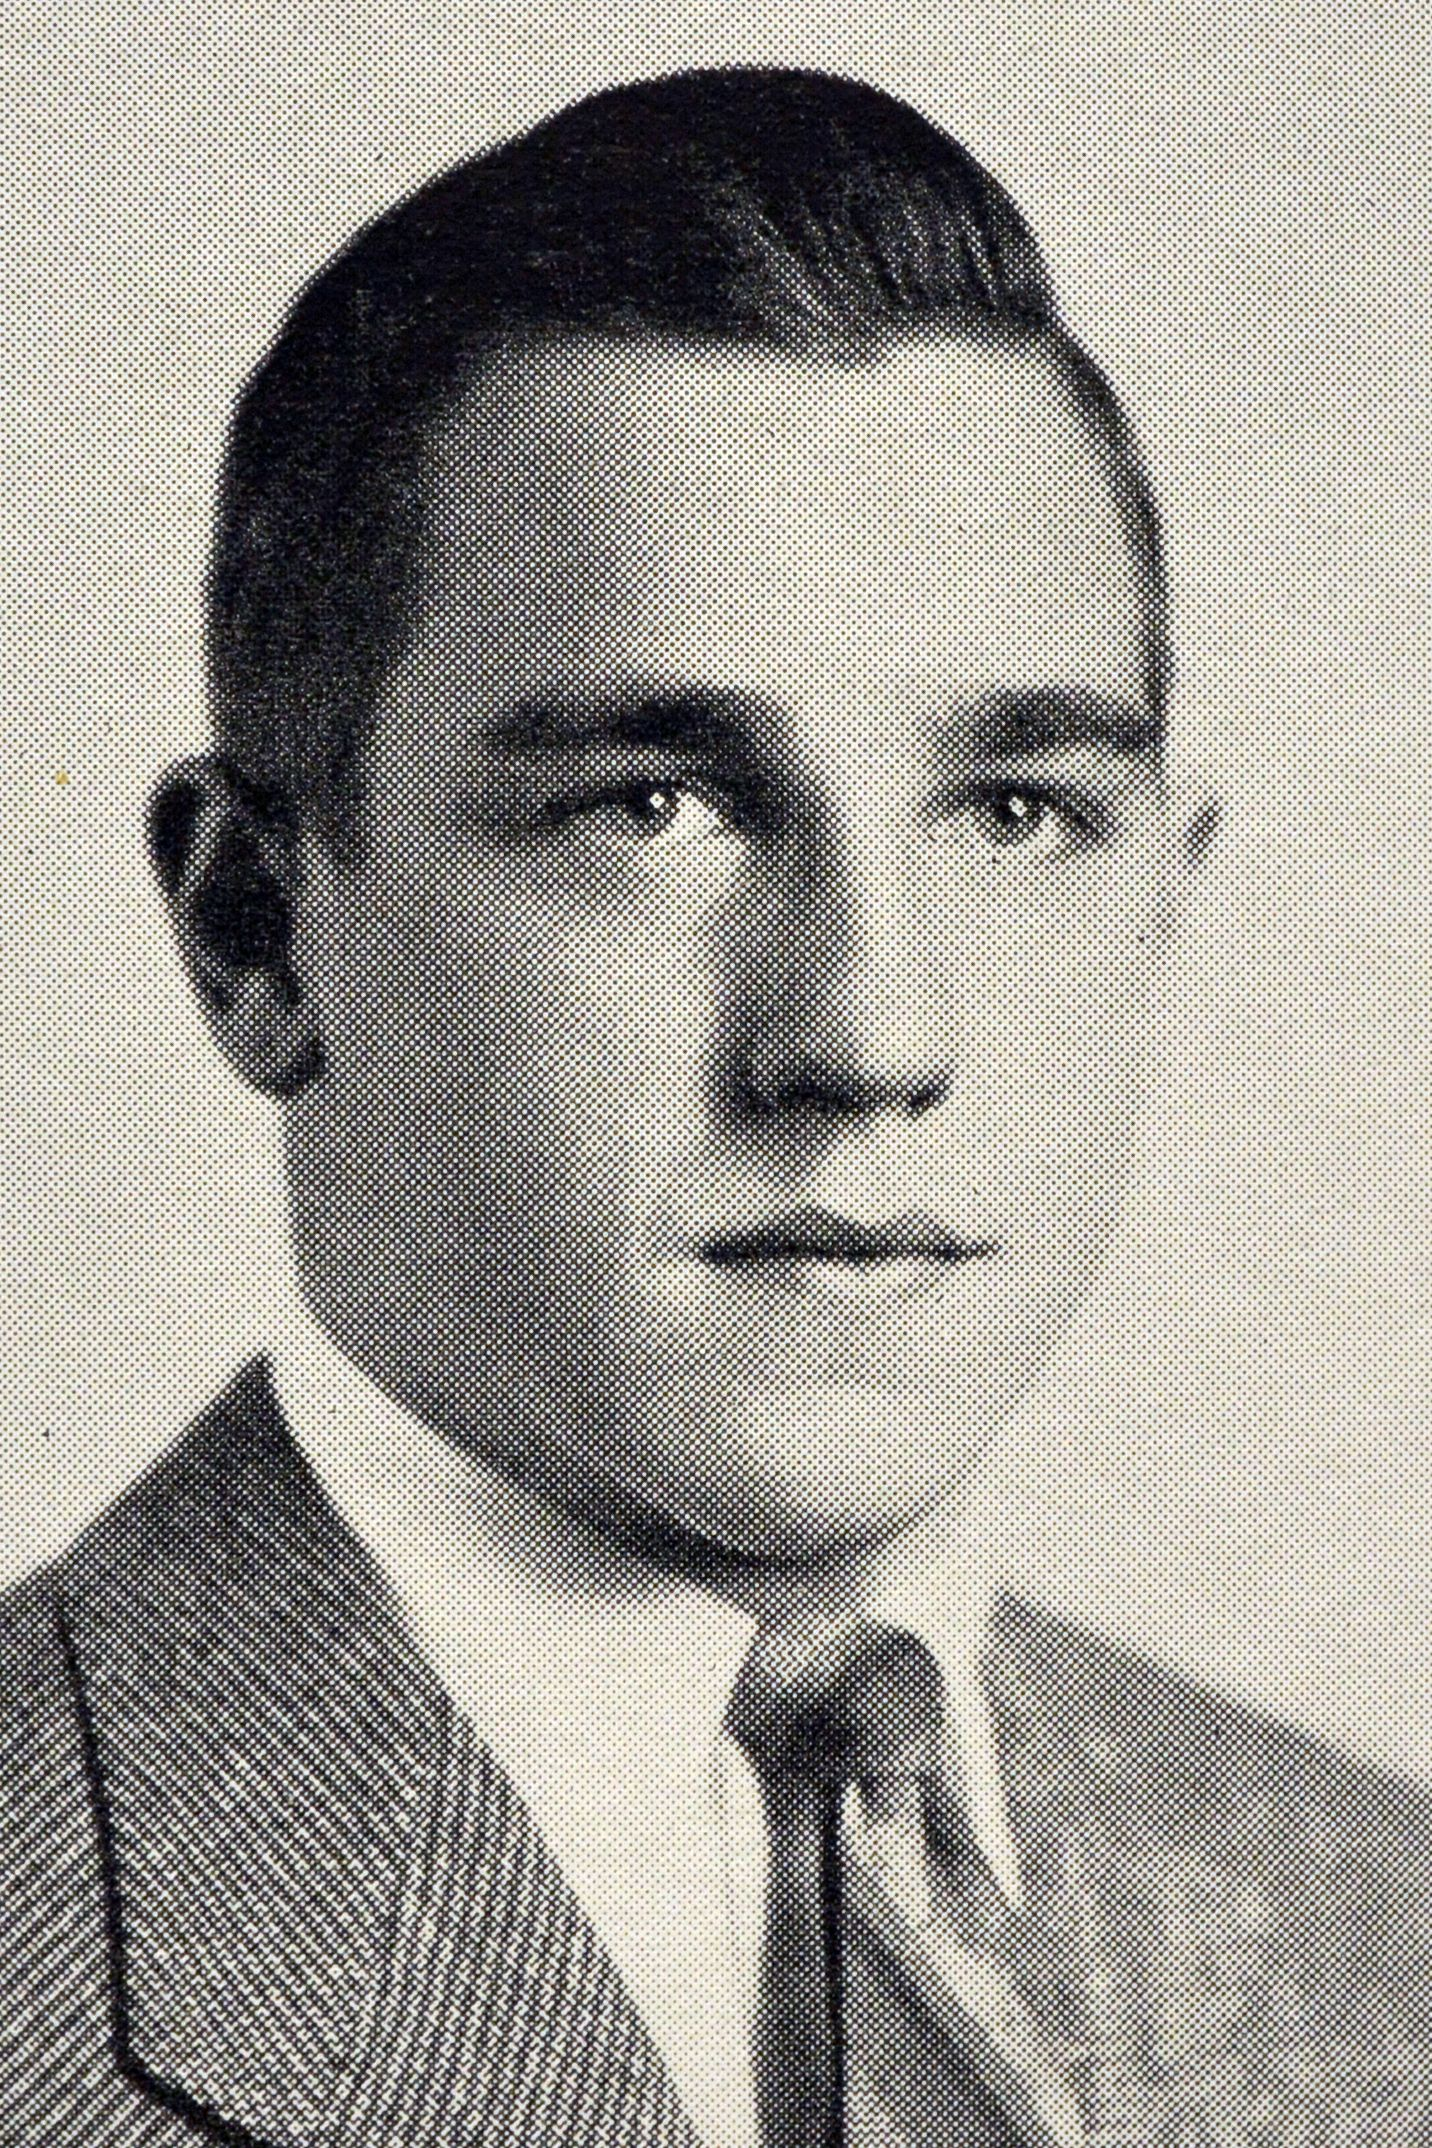 Henry D. Waters '48